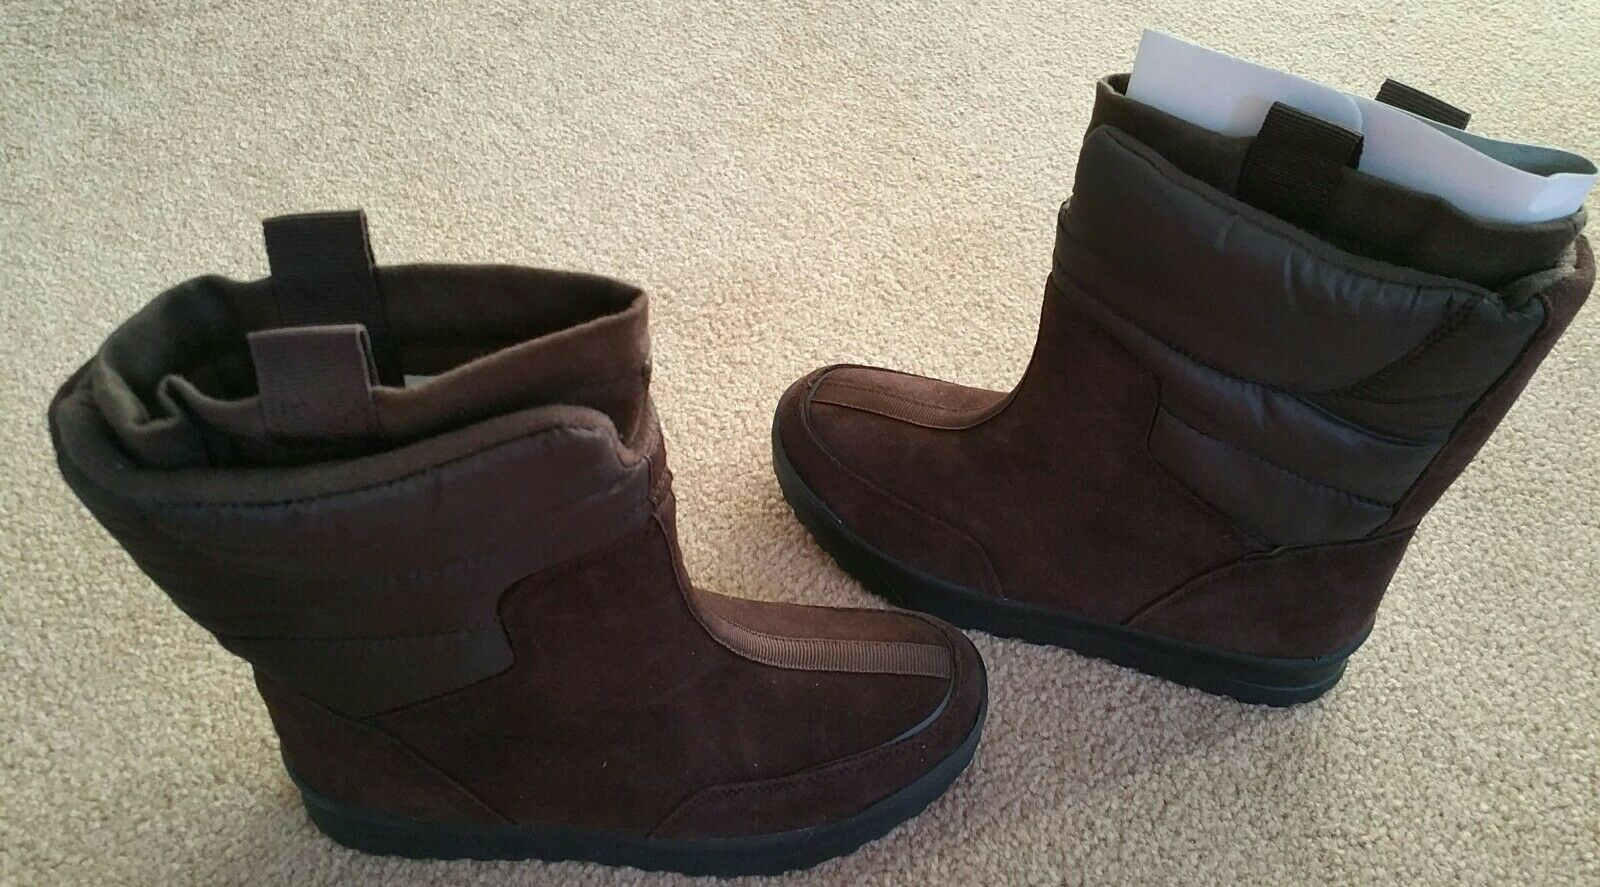 LANDS' END WOMEN'S BOOTS 406465 SZ. 6B  CONDITION BNWOB